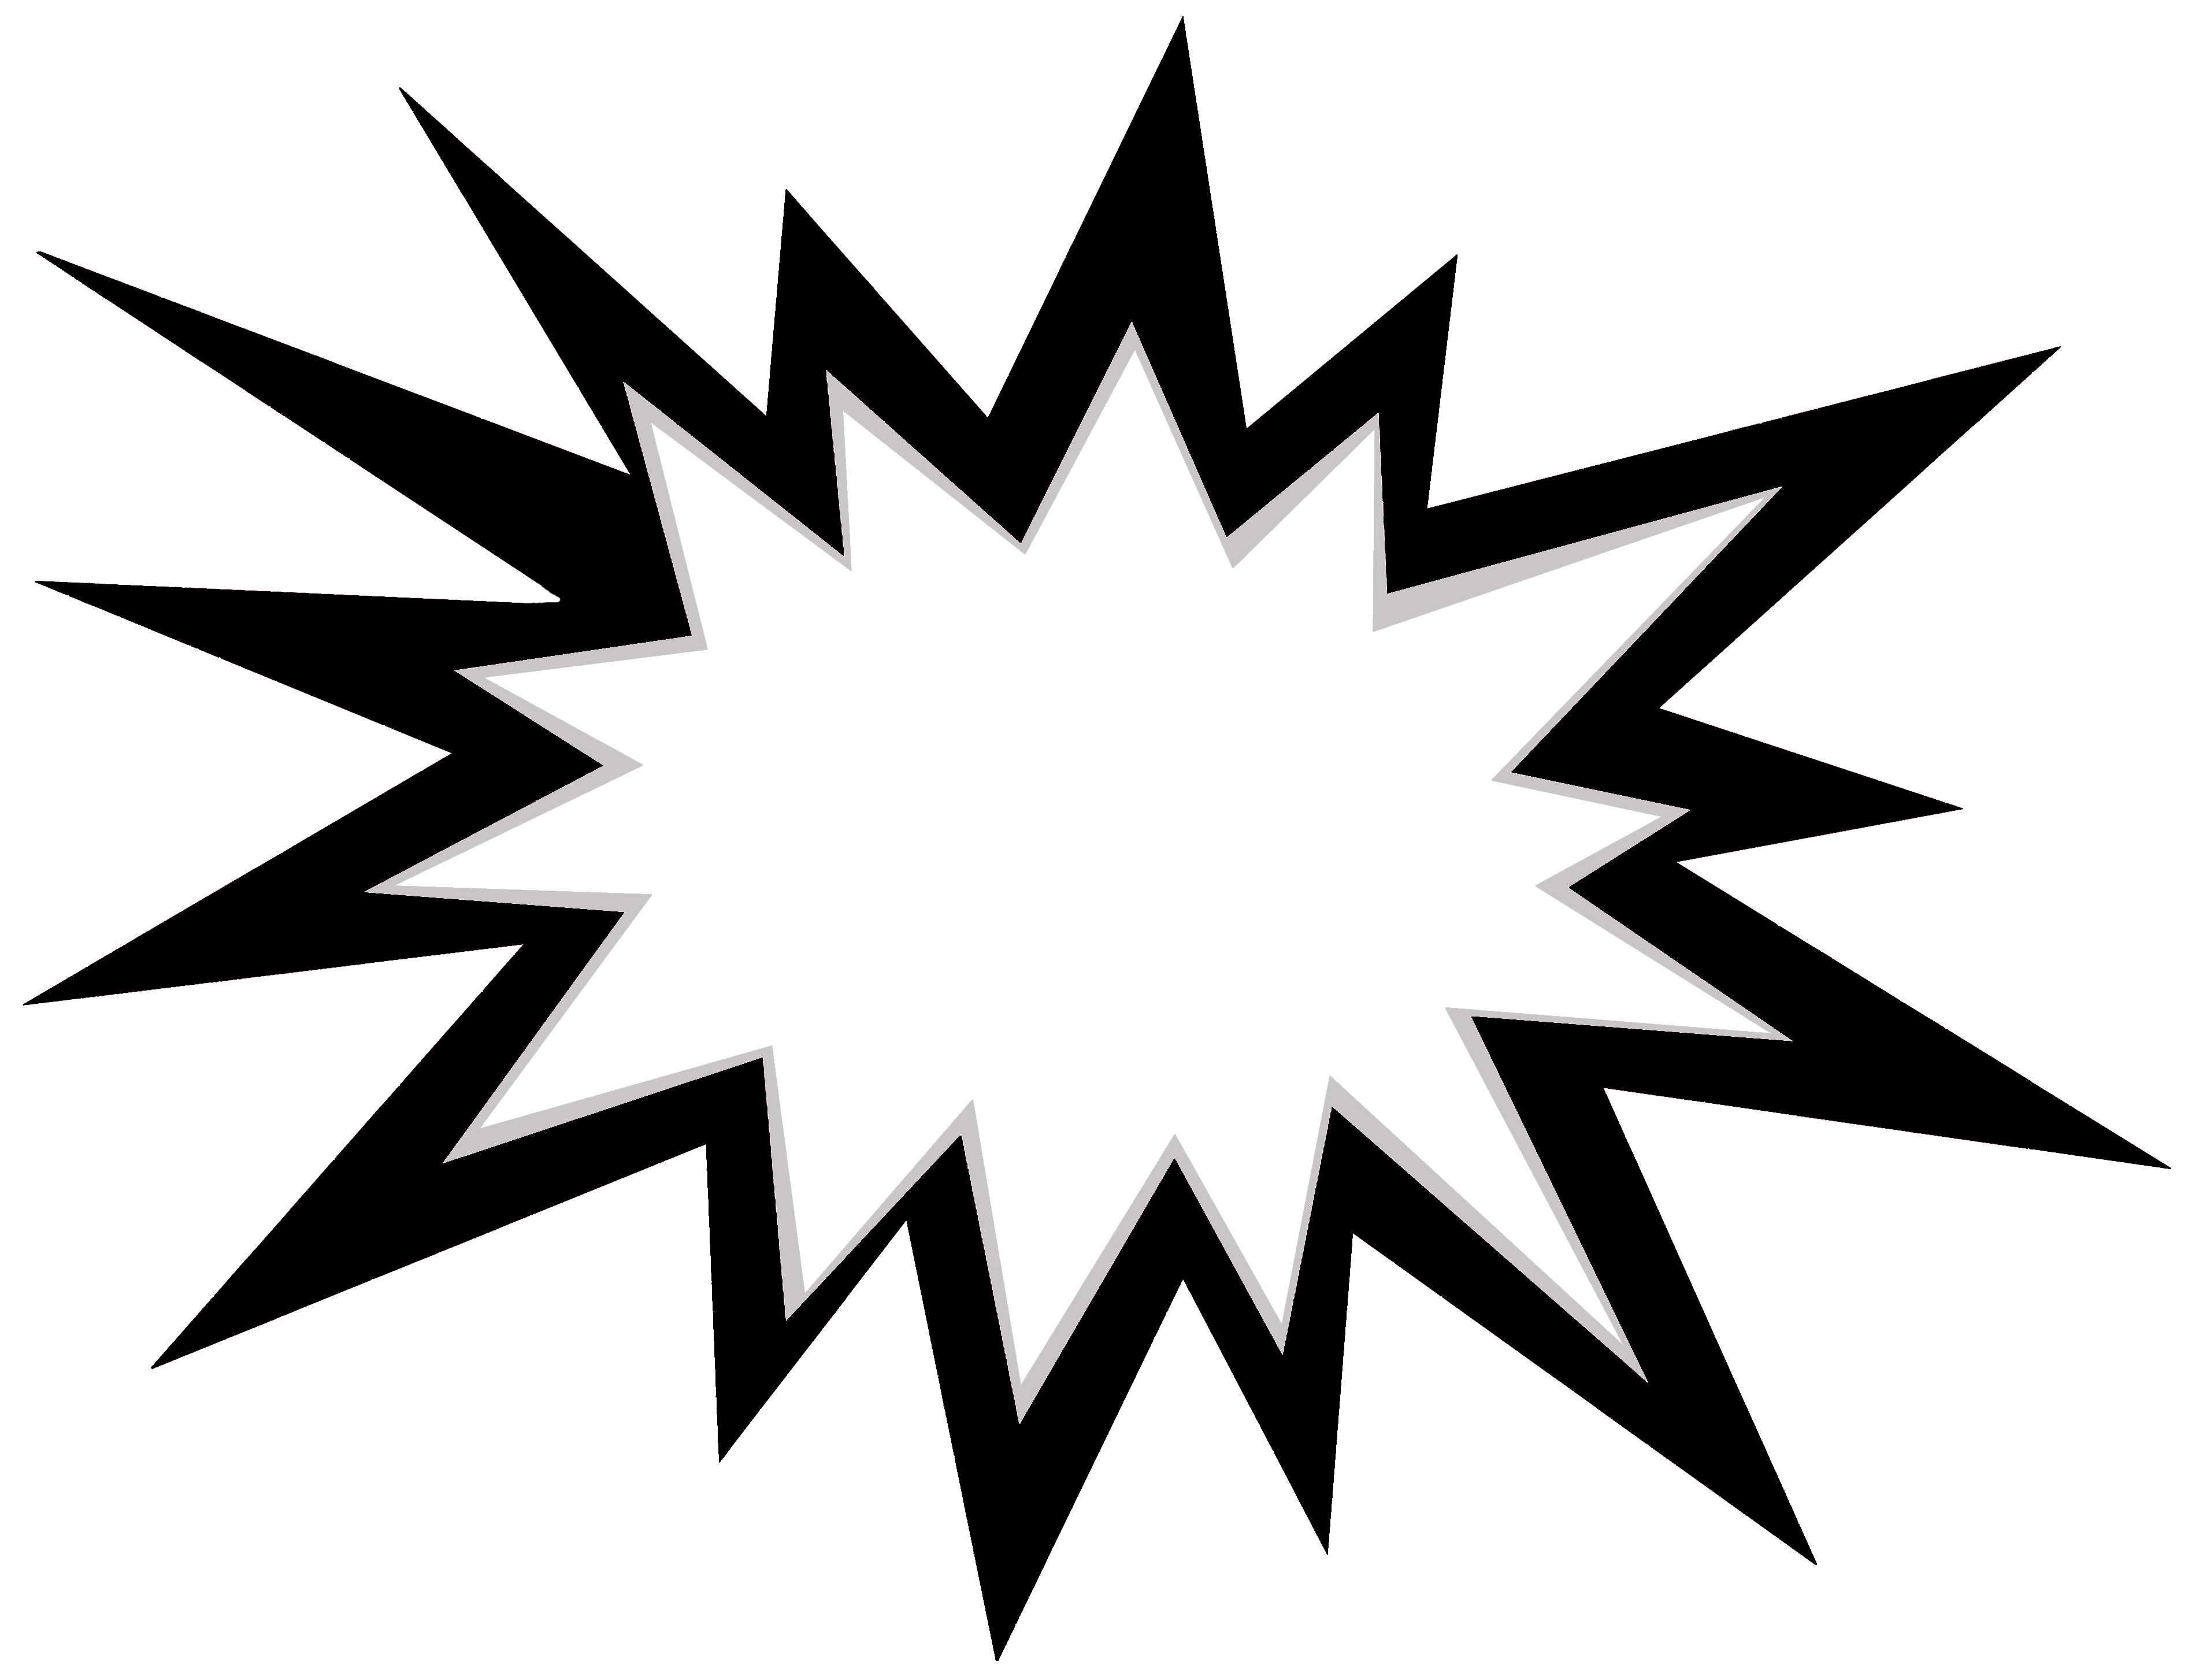 Black and white explosion icon